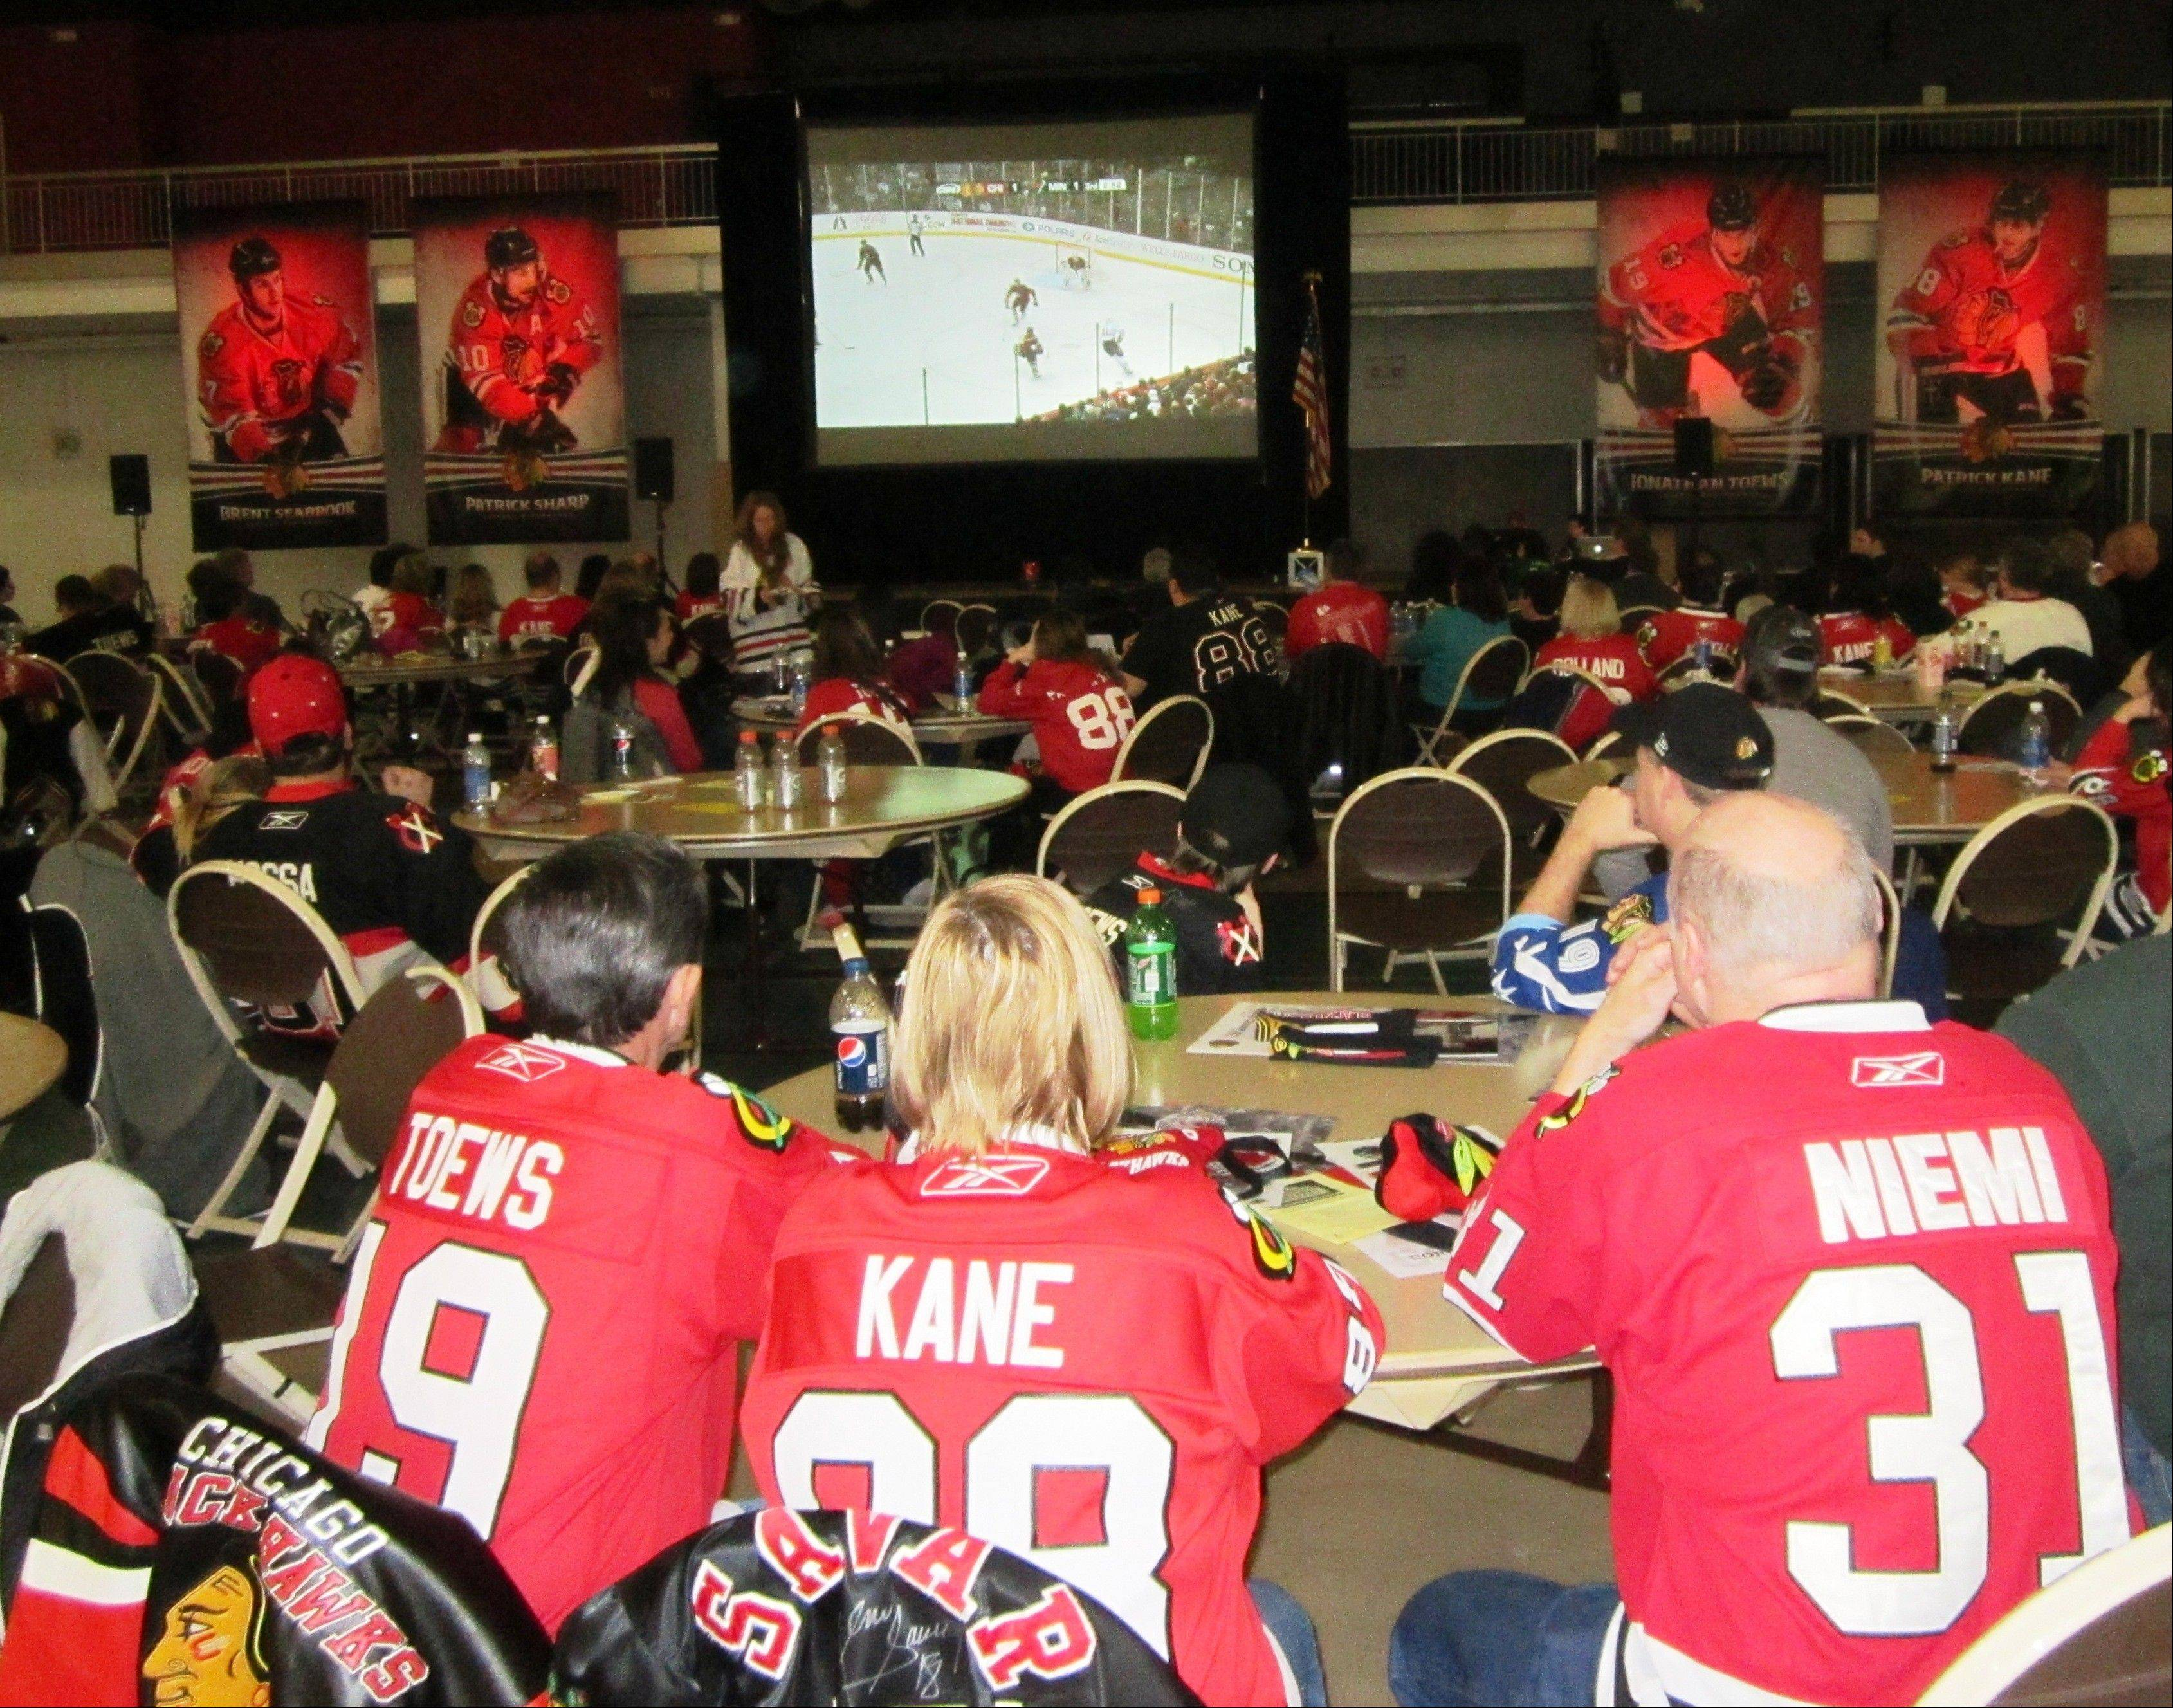 Jersey-wearing Blackhawks fans enjoy game action between the Blackhawks and Minnesota Wild on the big screen during the Blackhawks' Roadwatch Party at the Libertyville Sports Complex last Thursday.